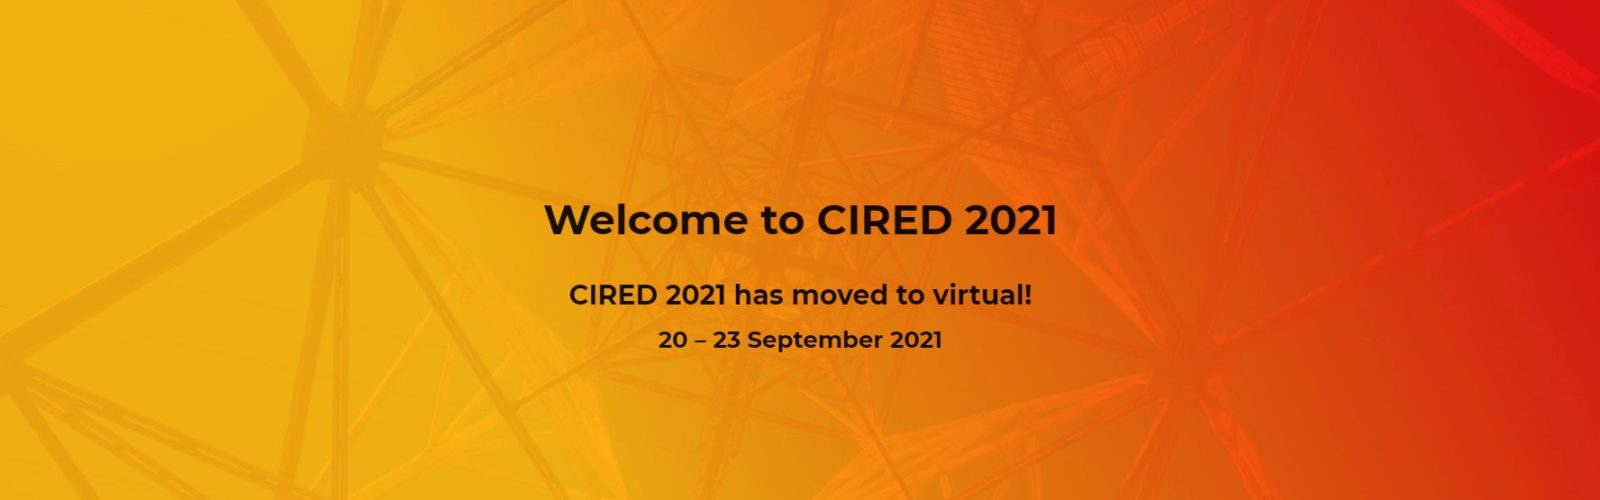 Cired 2021